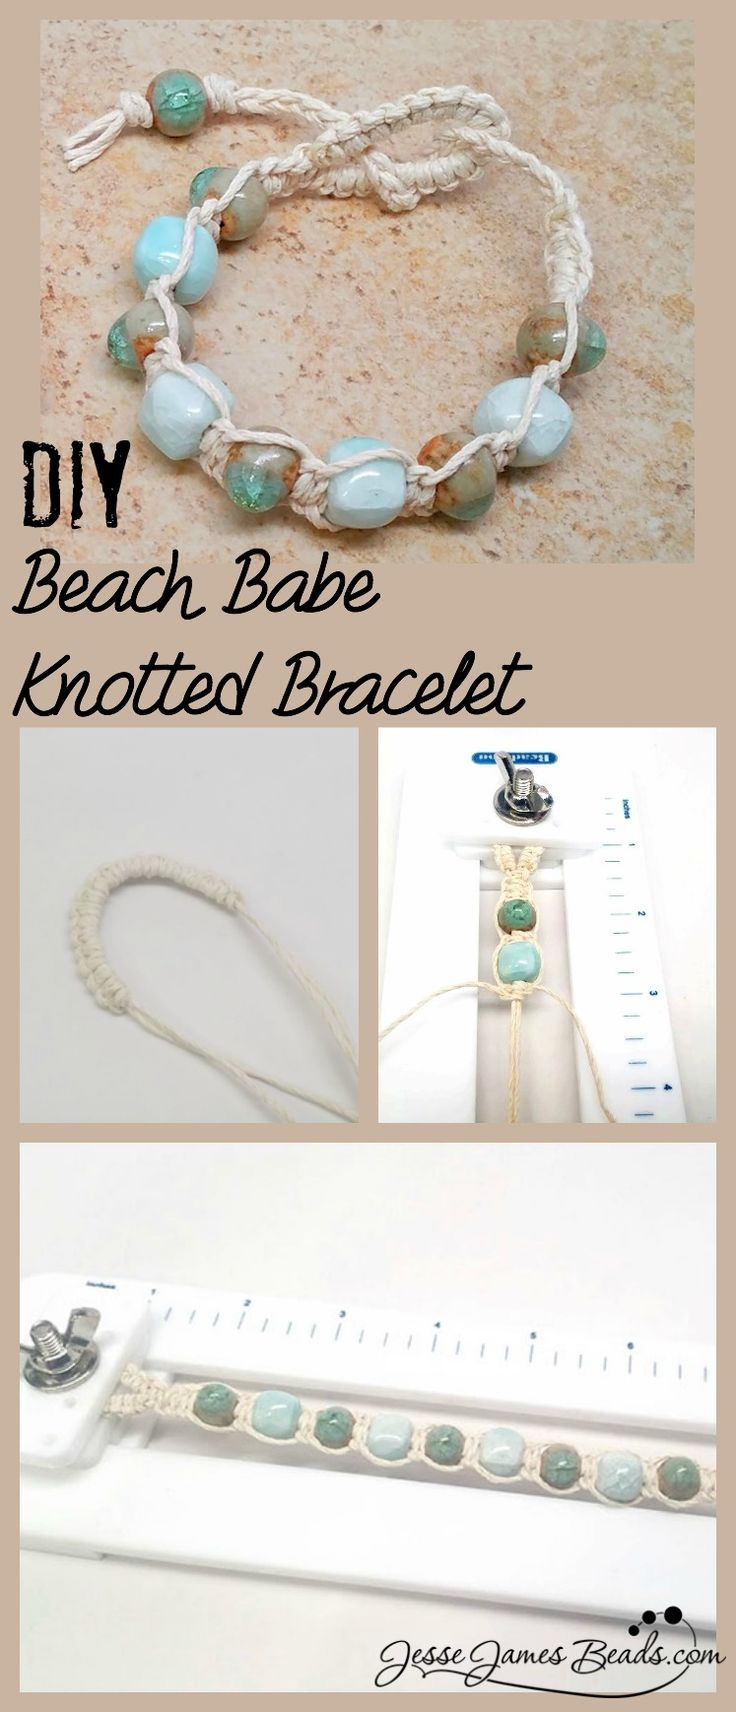 Beach Babe Knotted Bracelet - How to Make Hemp Jewelry from Jesse James Beads